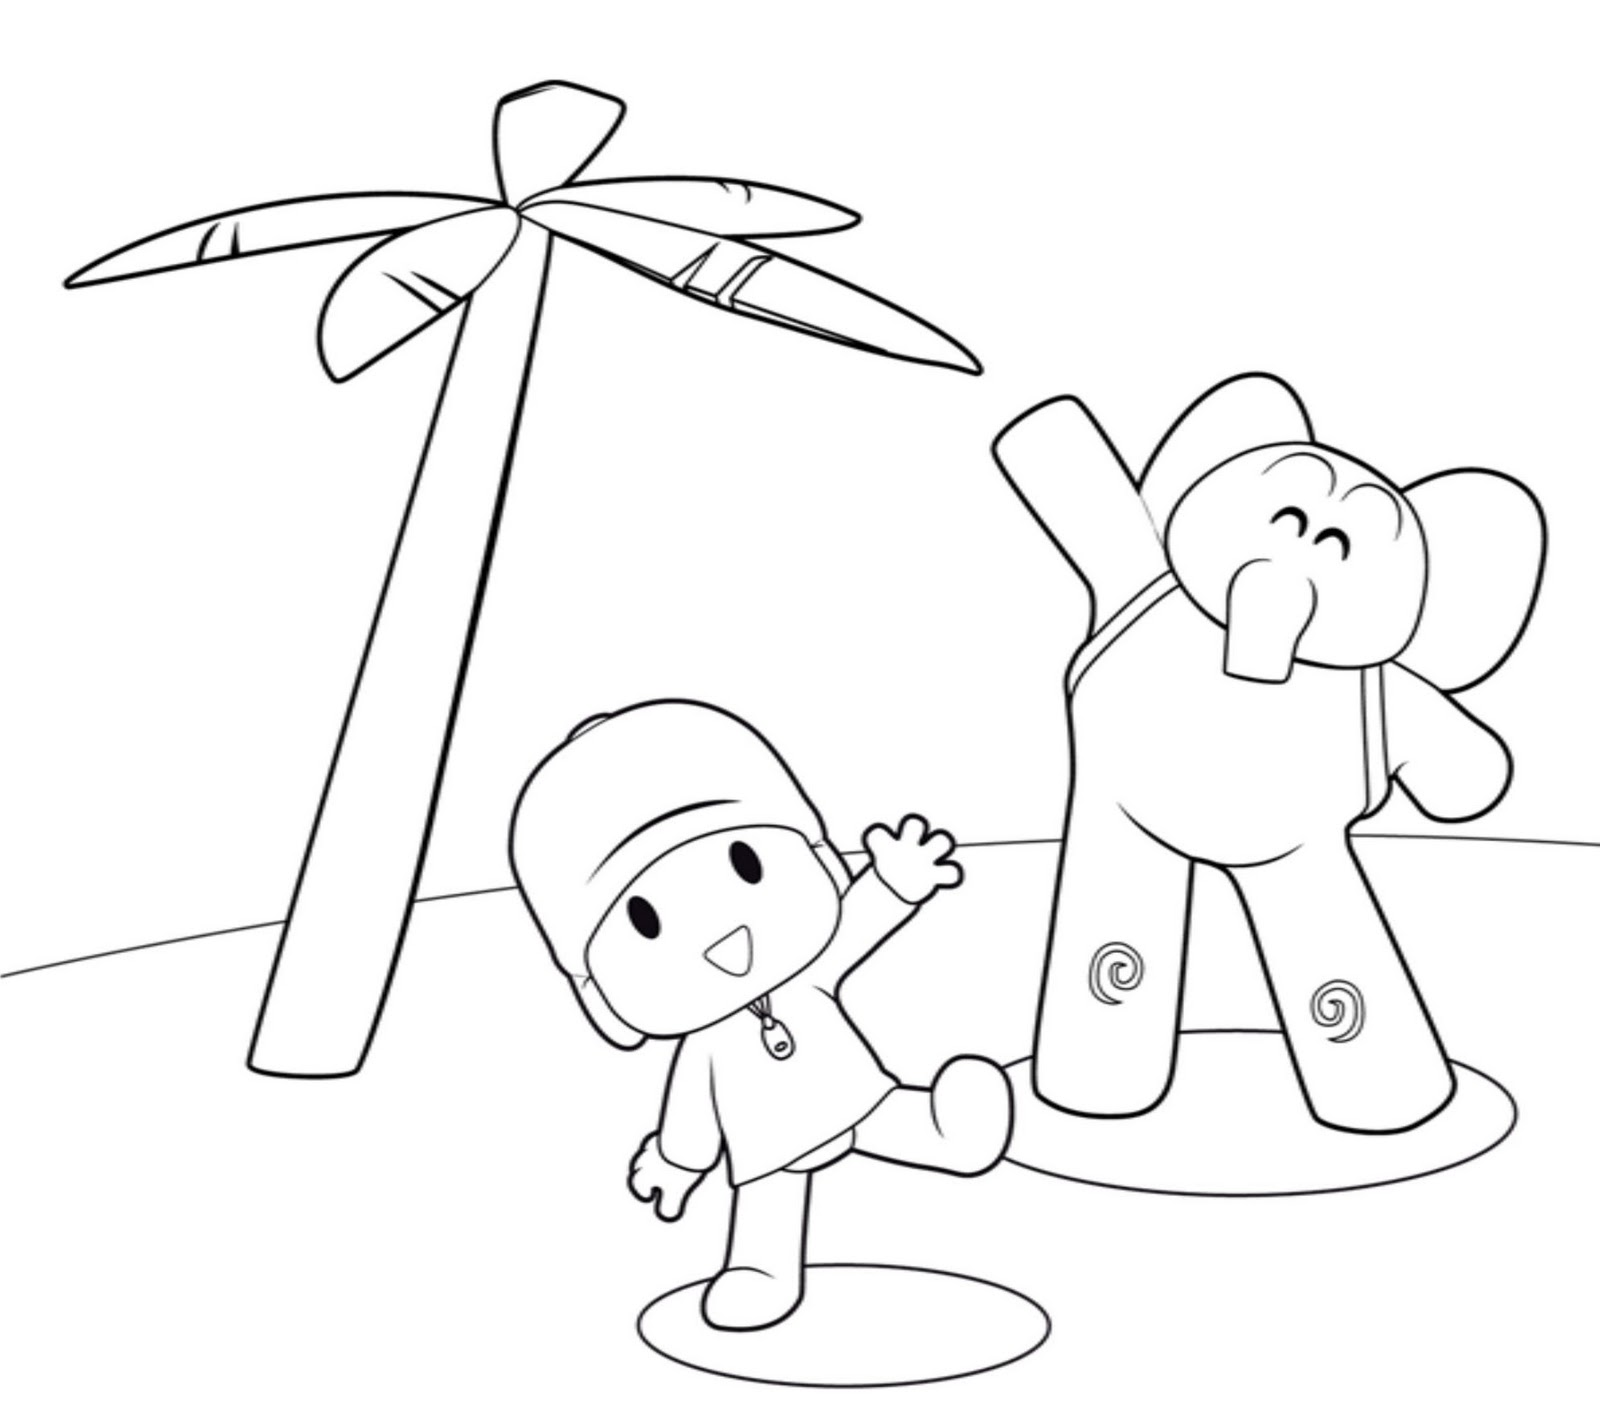 Free Printable Pocoyo Coloring Pages For Kids Coloring Page Printable